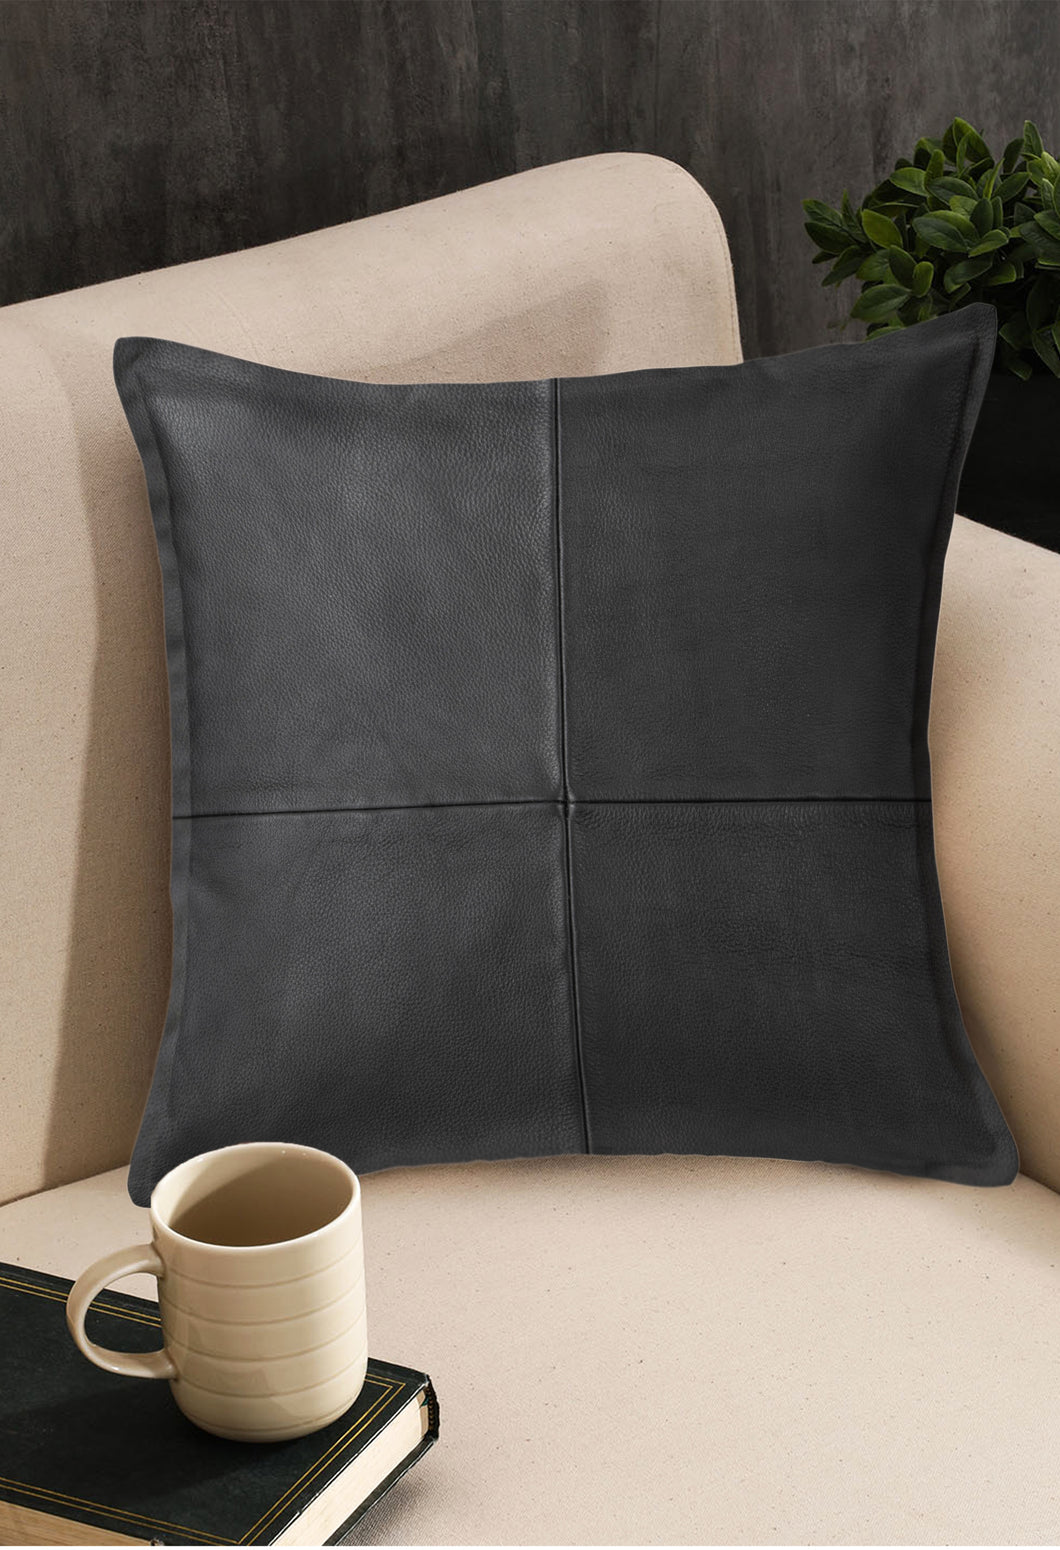 SWHF Solid Leather Cushion Cover 18